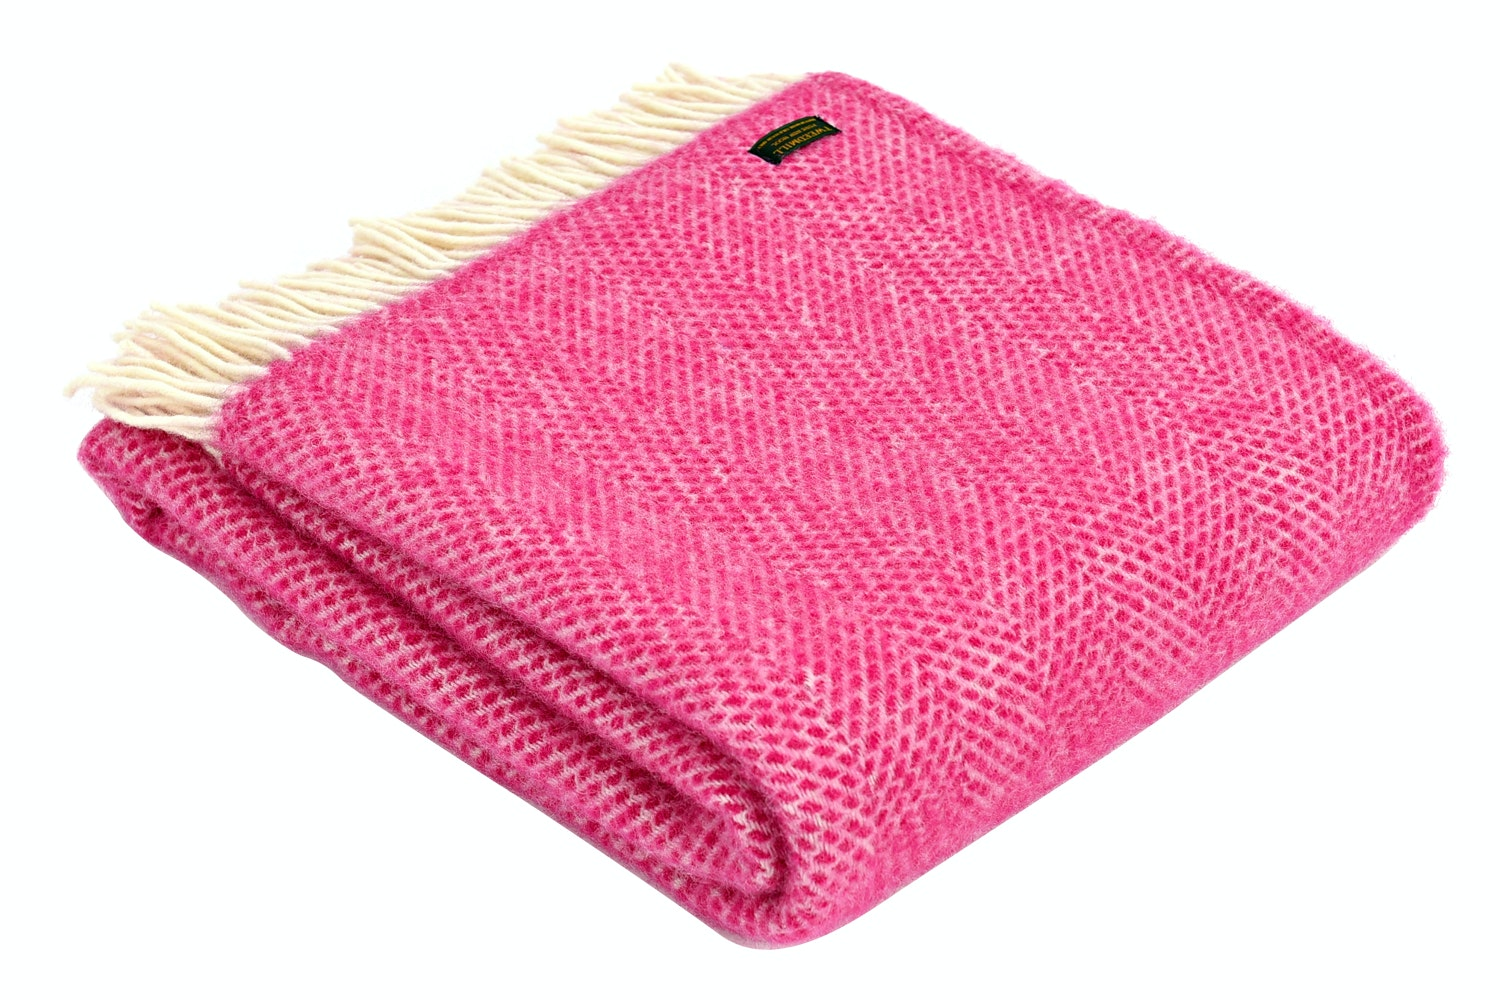 Beehive Throw Cerise Pink